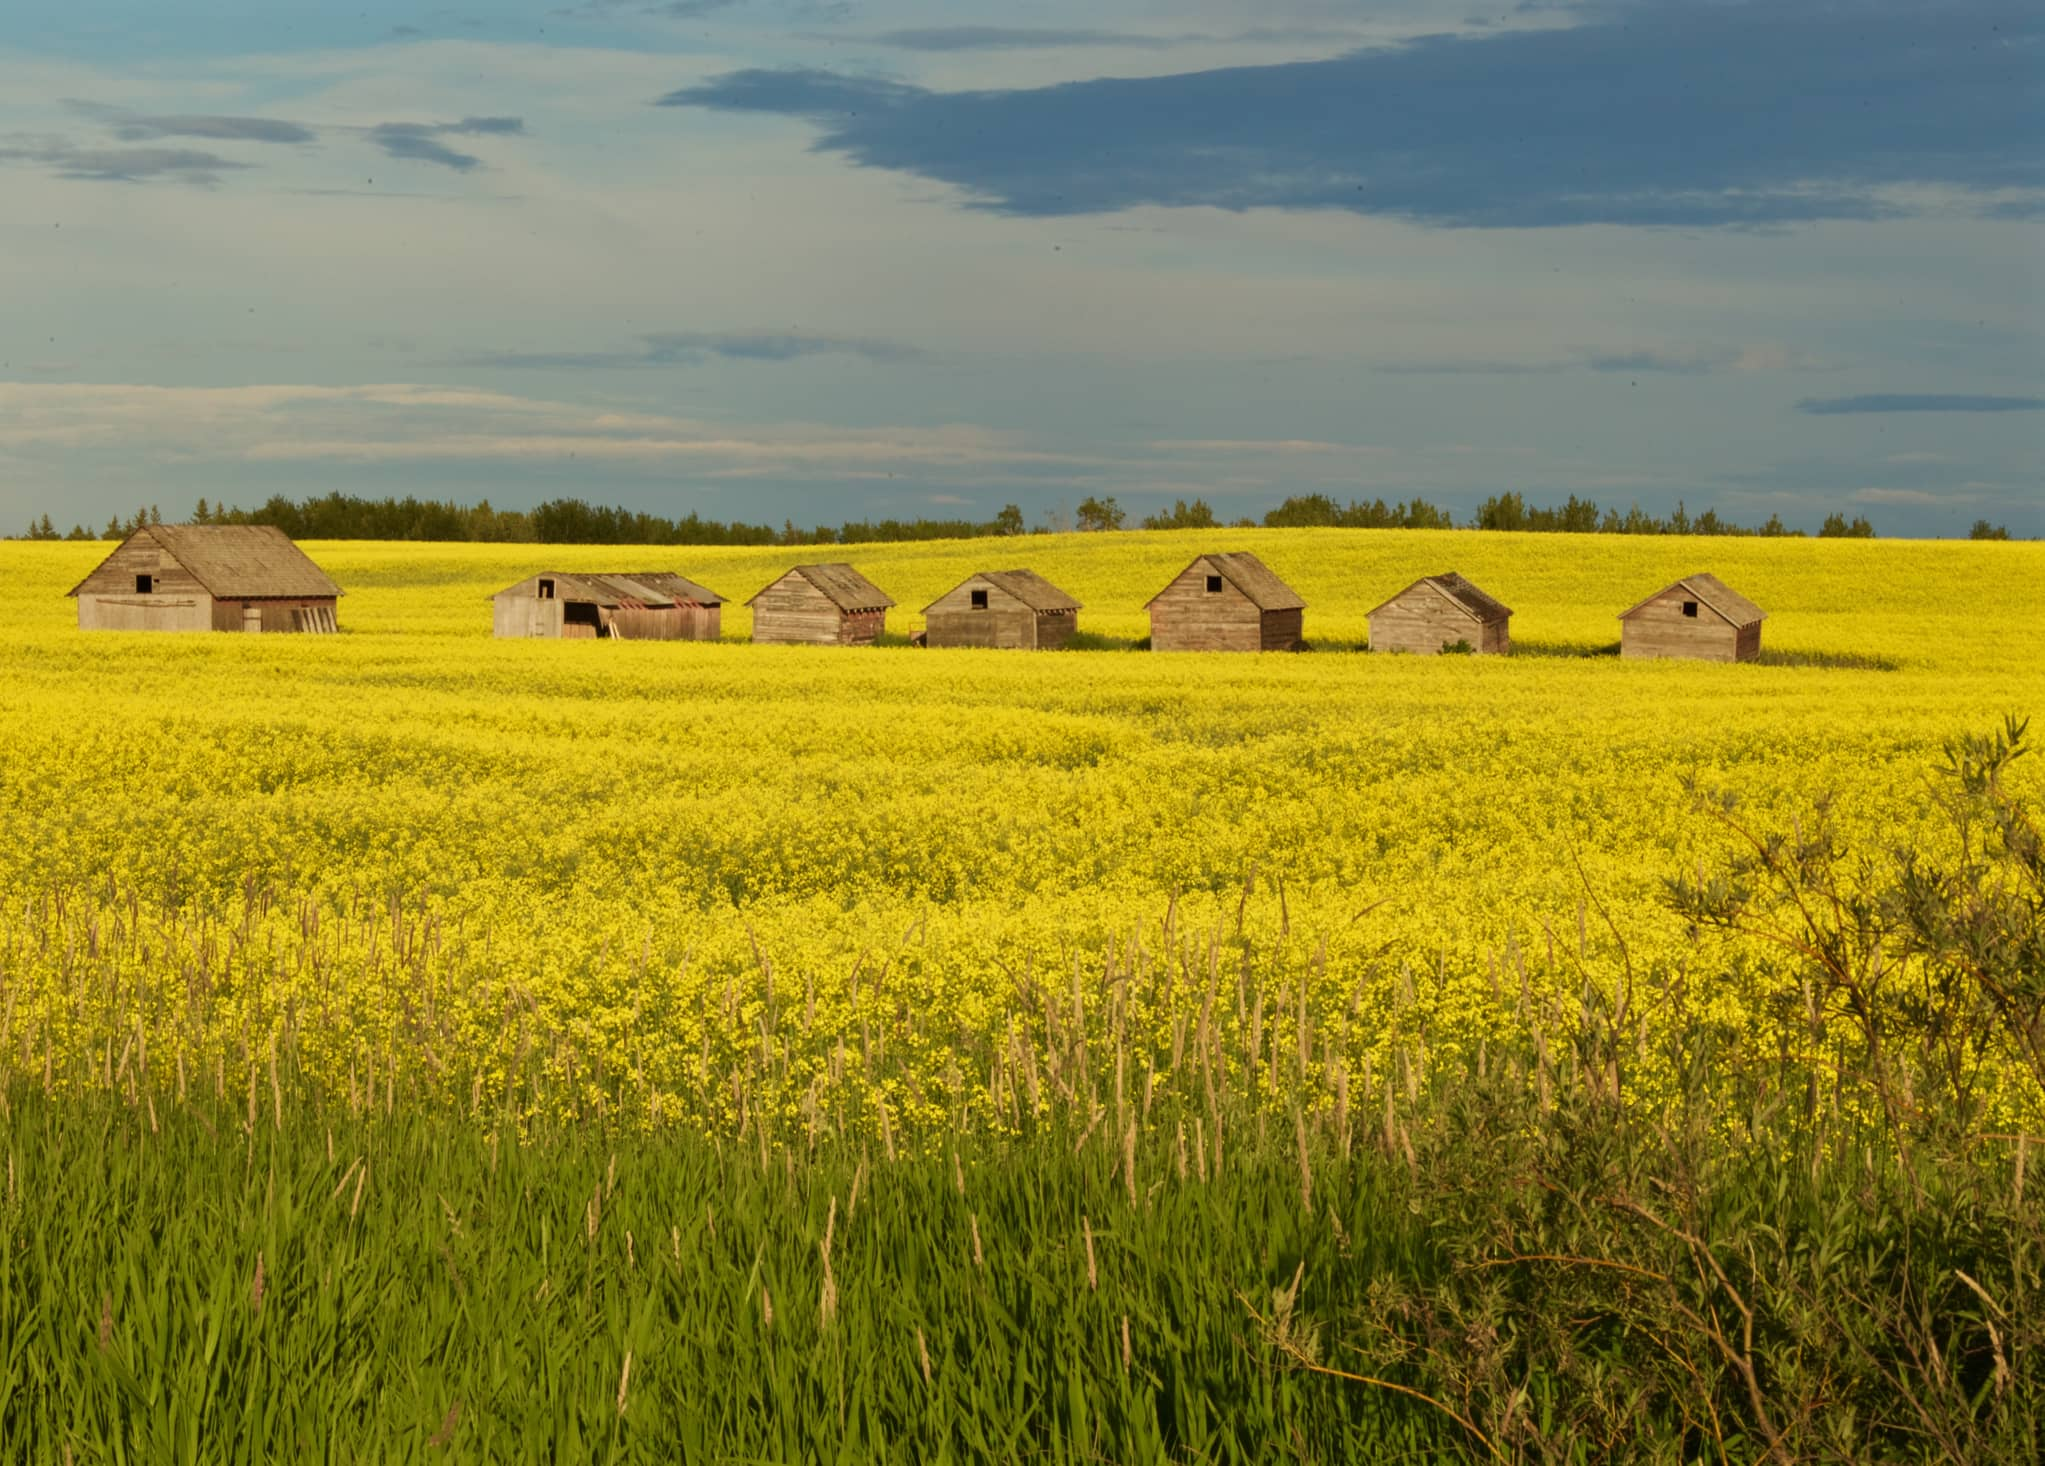 Old sheds at Canola Field, Alberta, Canada